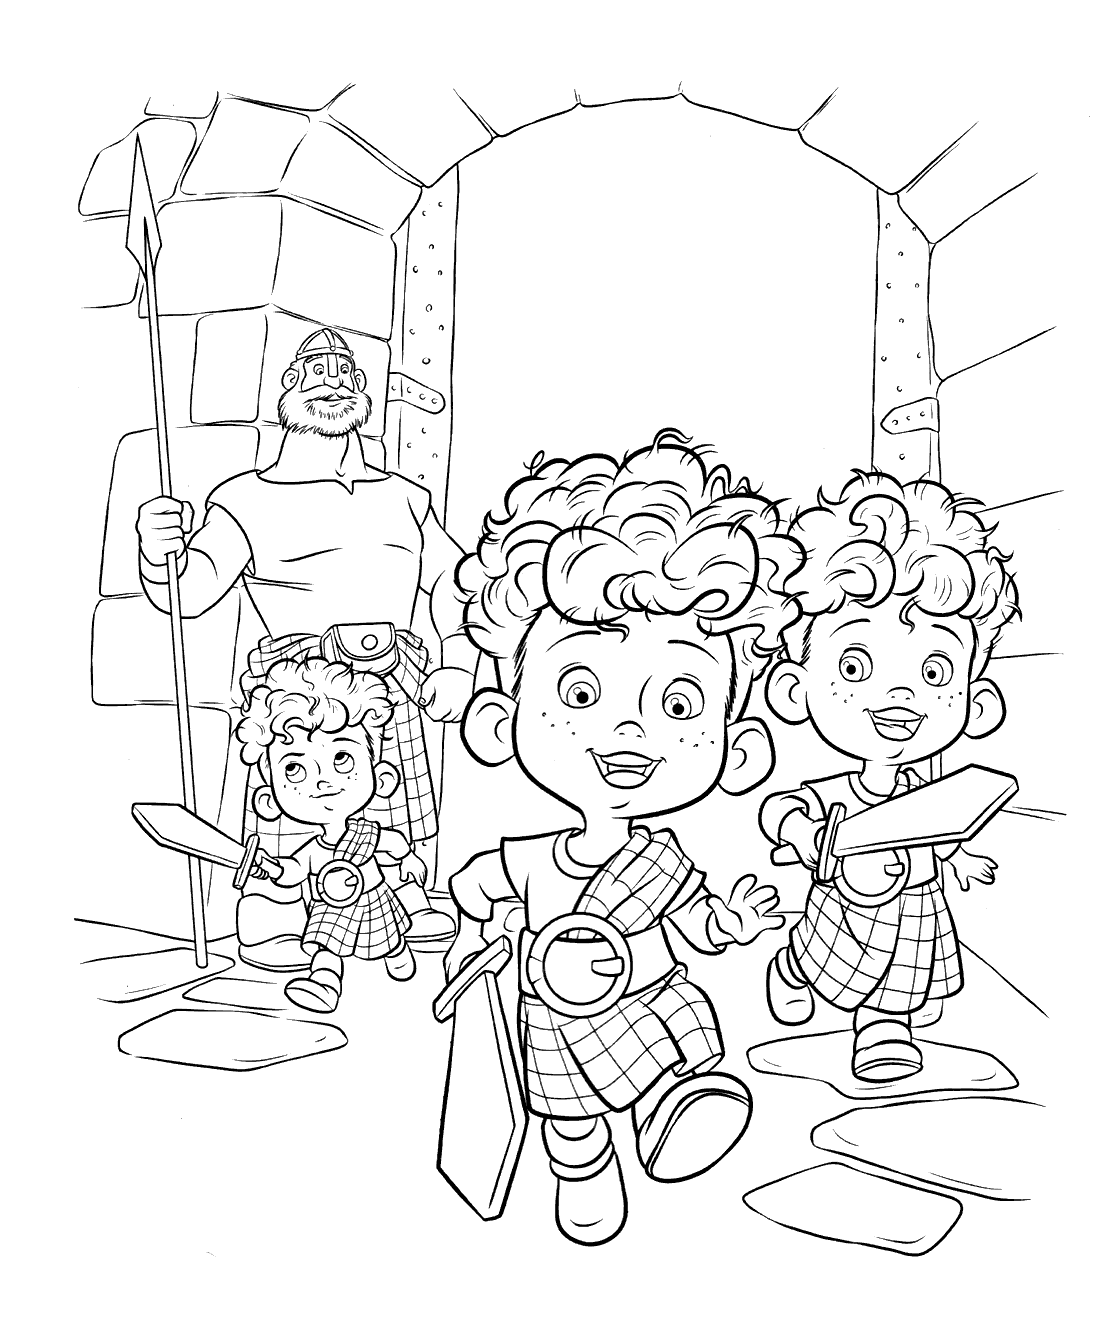 Brave coloring pages to download and print for free